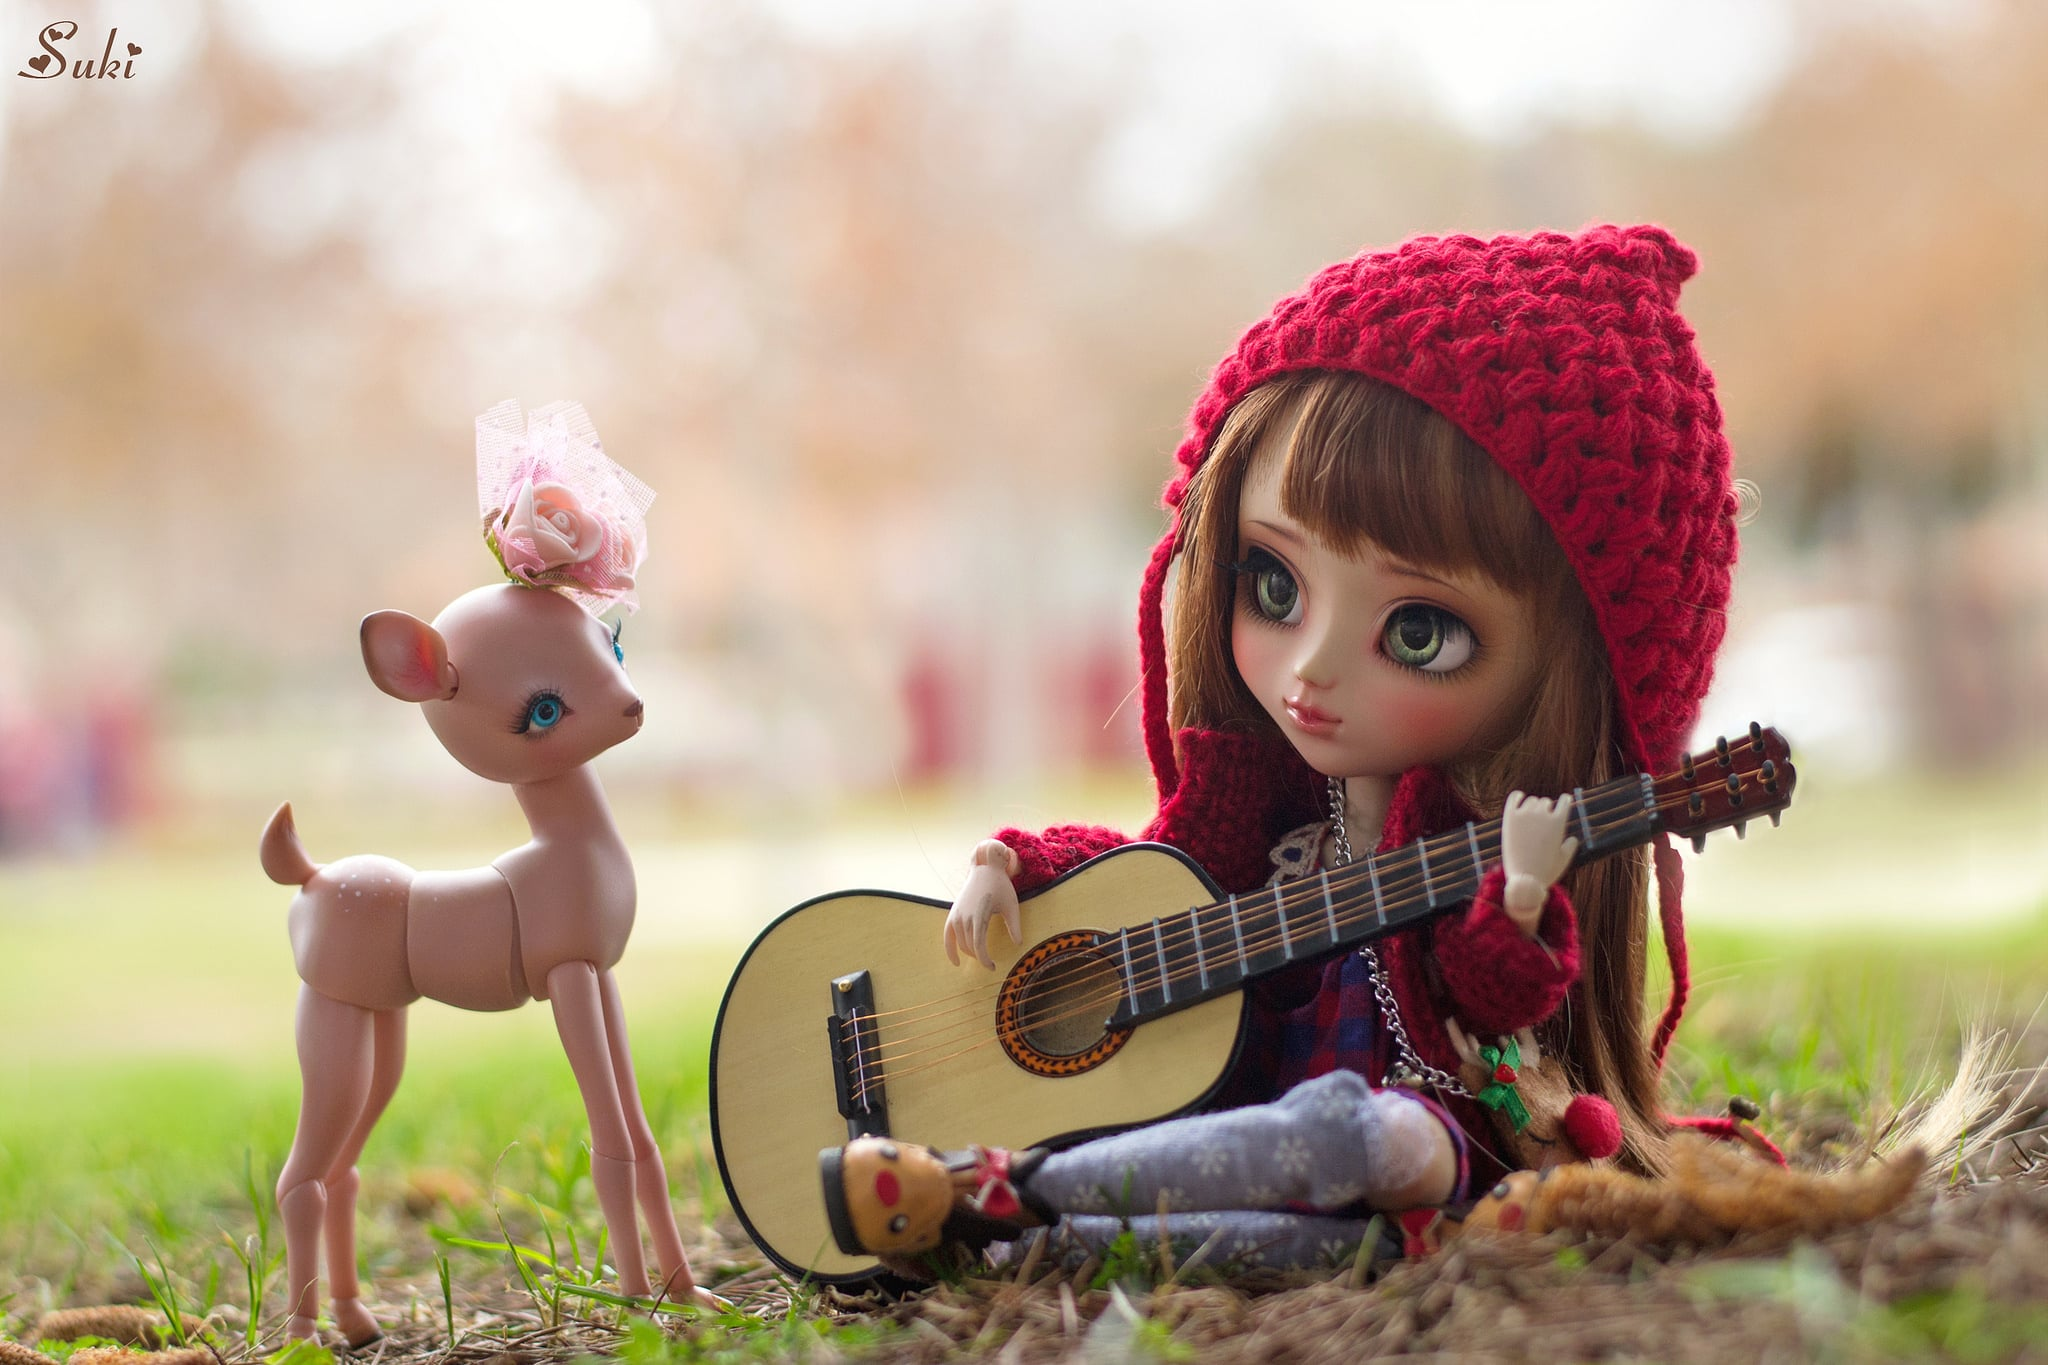 Girl Playing Guitar Hd Wallpapers 130 Cool Stylish Profile Pictures For Facebook For Girls